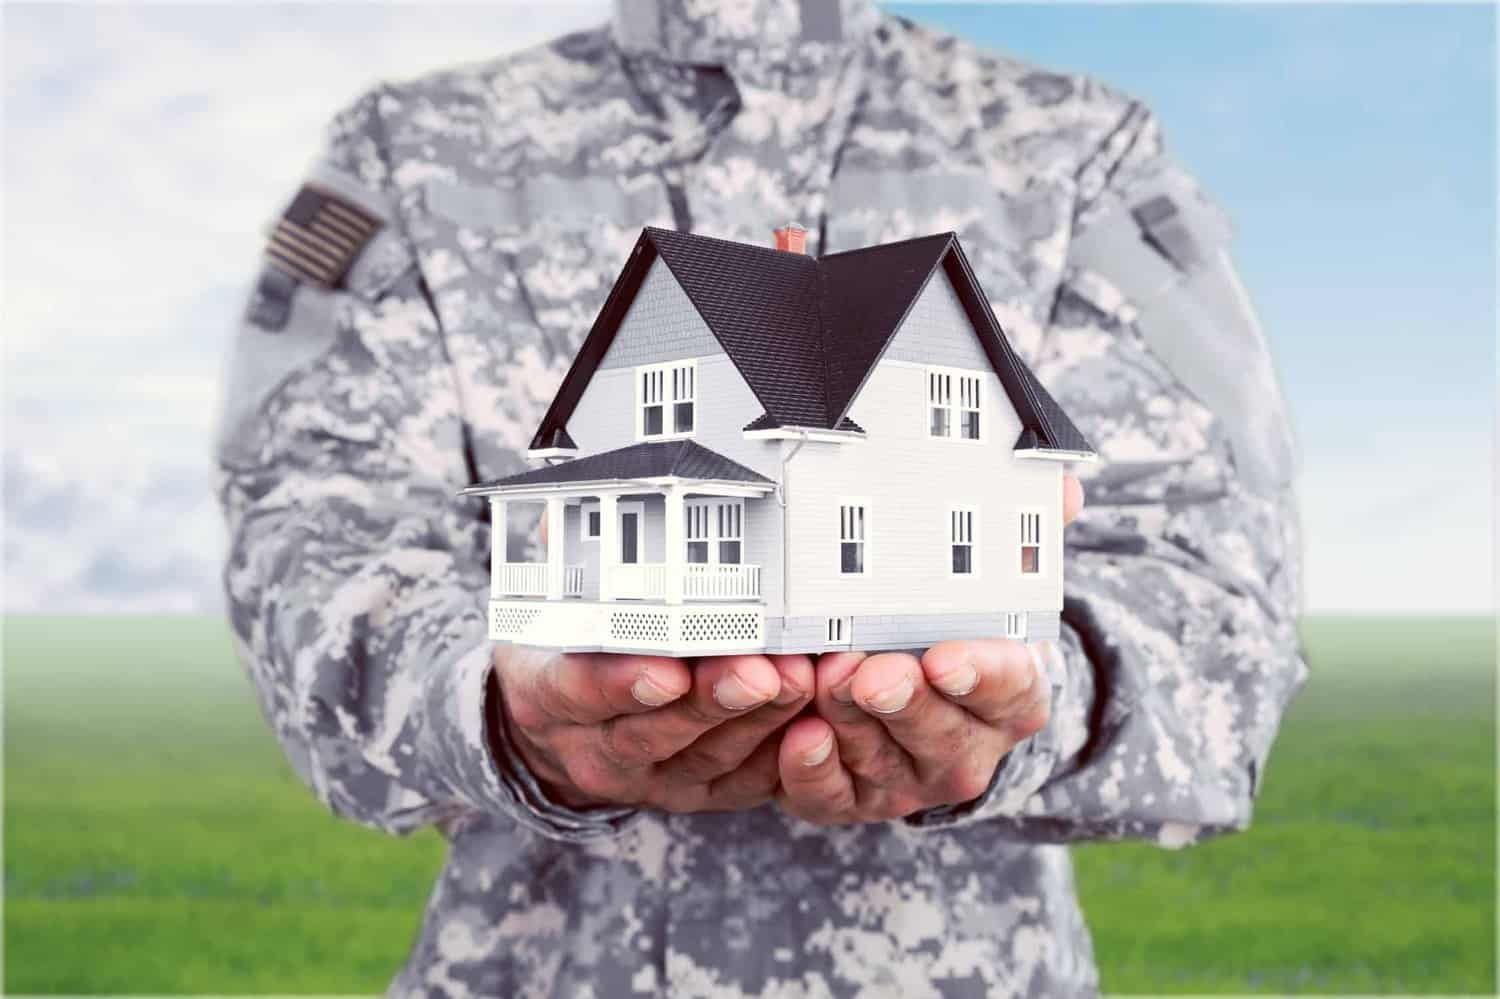 American soldier standing in field holding up a model house.